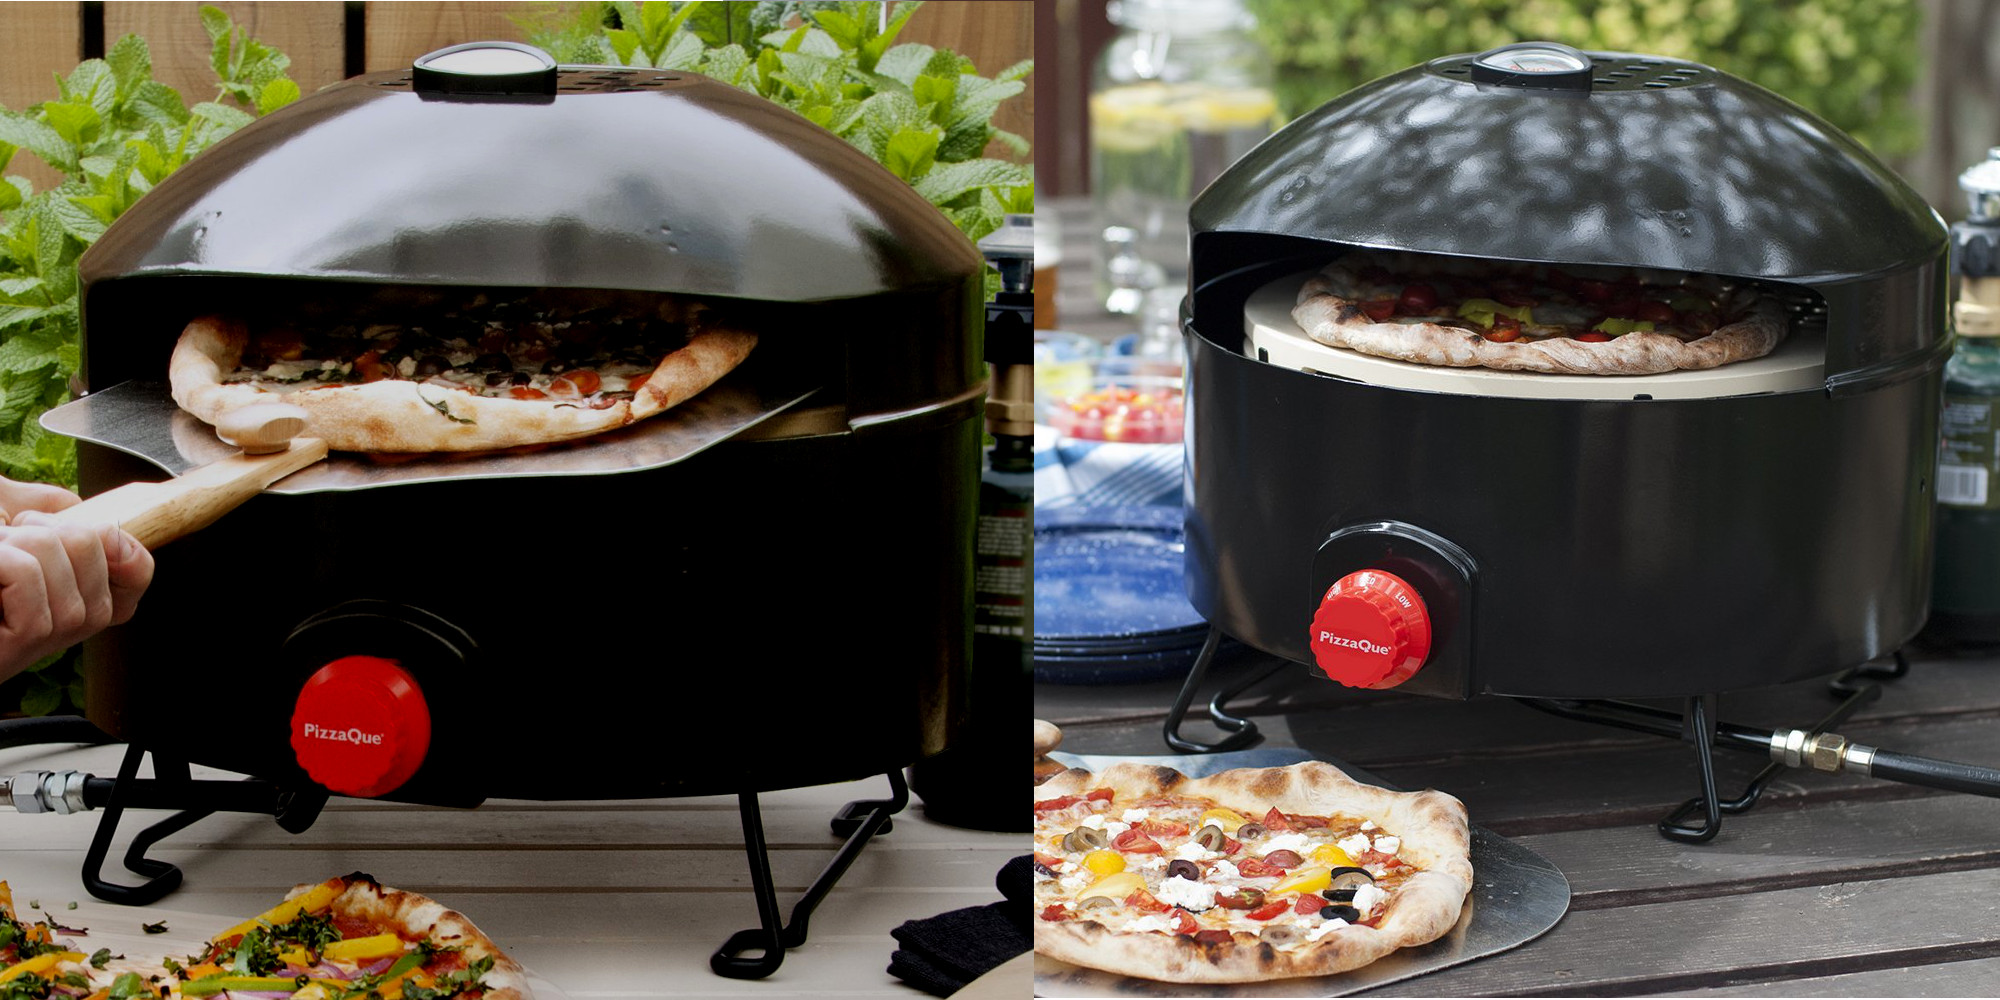 pizzacraft-pizzaque-outdoor-pizza-oven-7